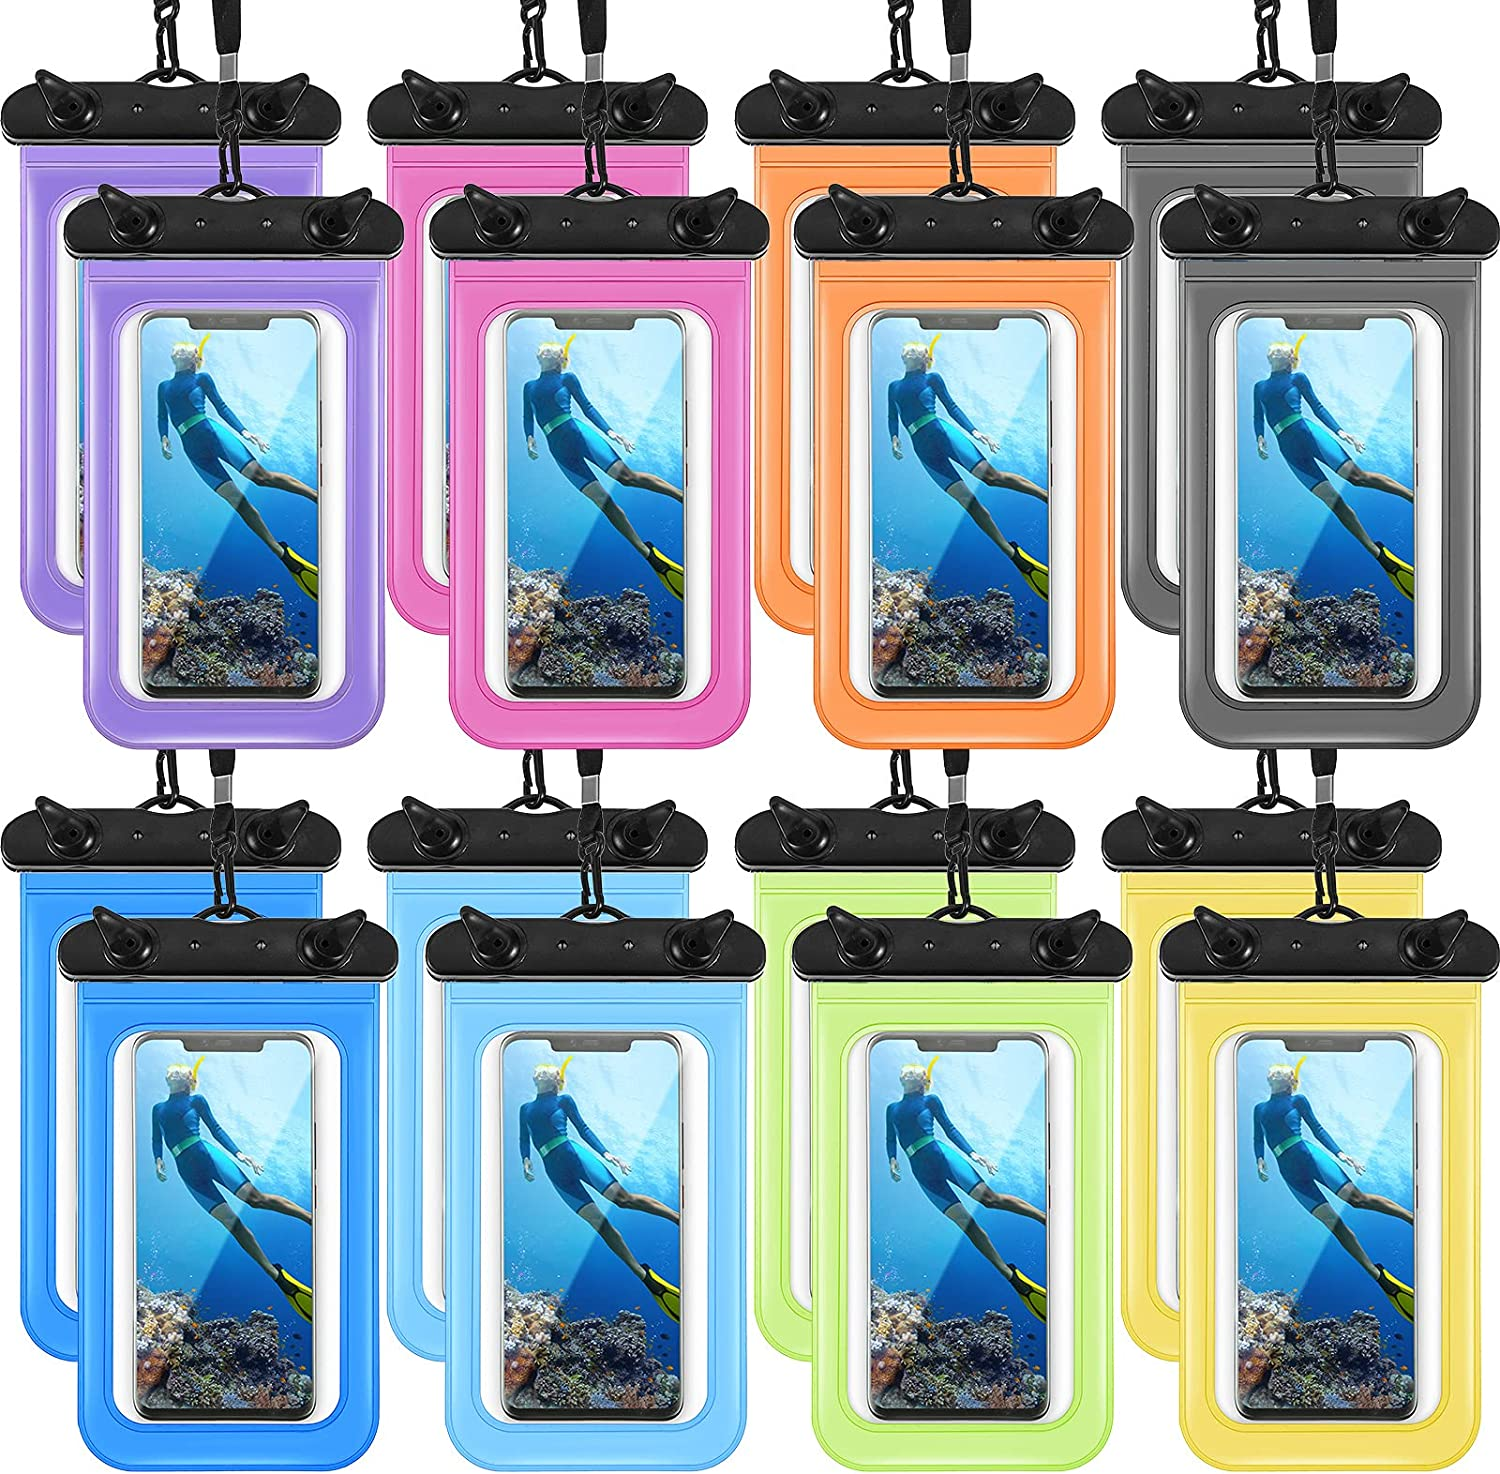 16 Pieces Universal Waterproof Phone Pouch Clear Cellphone Dry Bag with Lanyard PVC Waterproof Bag Suitable for Swimming Diving Water Skiing Hold up to 8 Inch of Phones